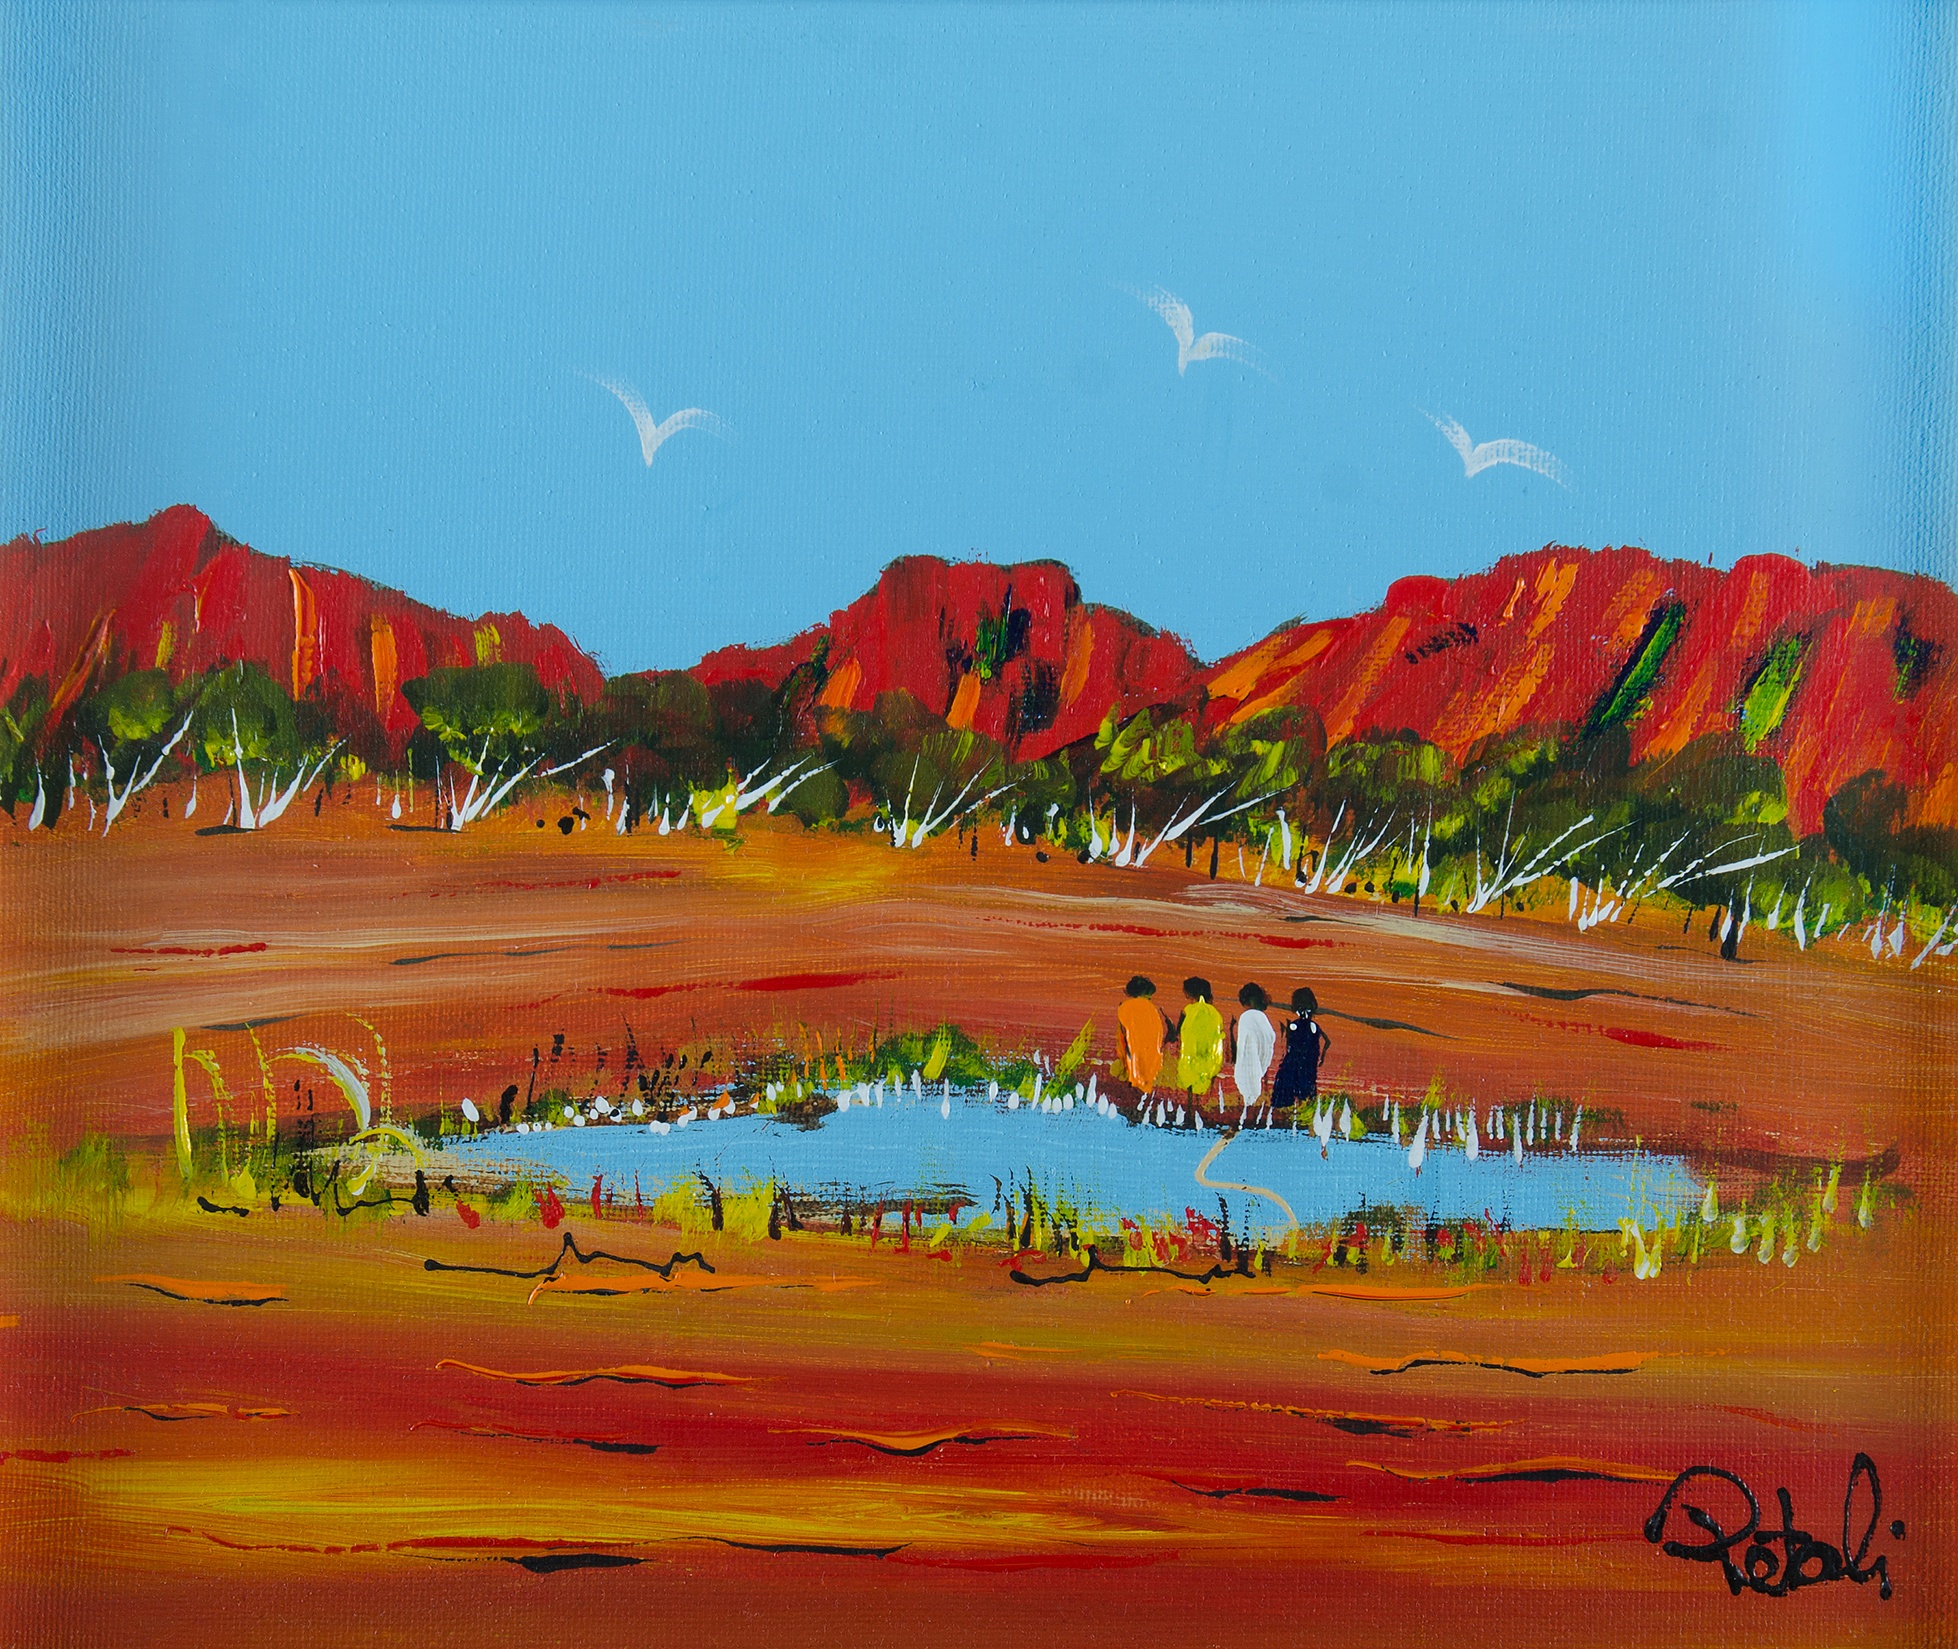 'PETALI, Nick (1932-2014): Four Women at Waterhole Acrylic on Canvas'